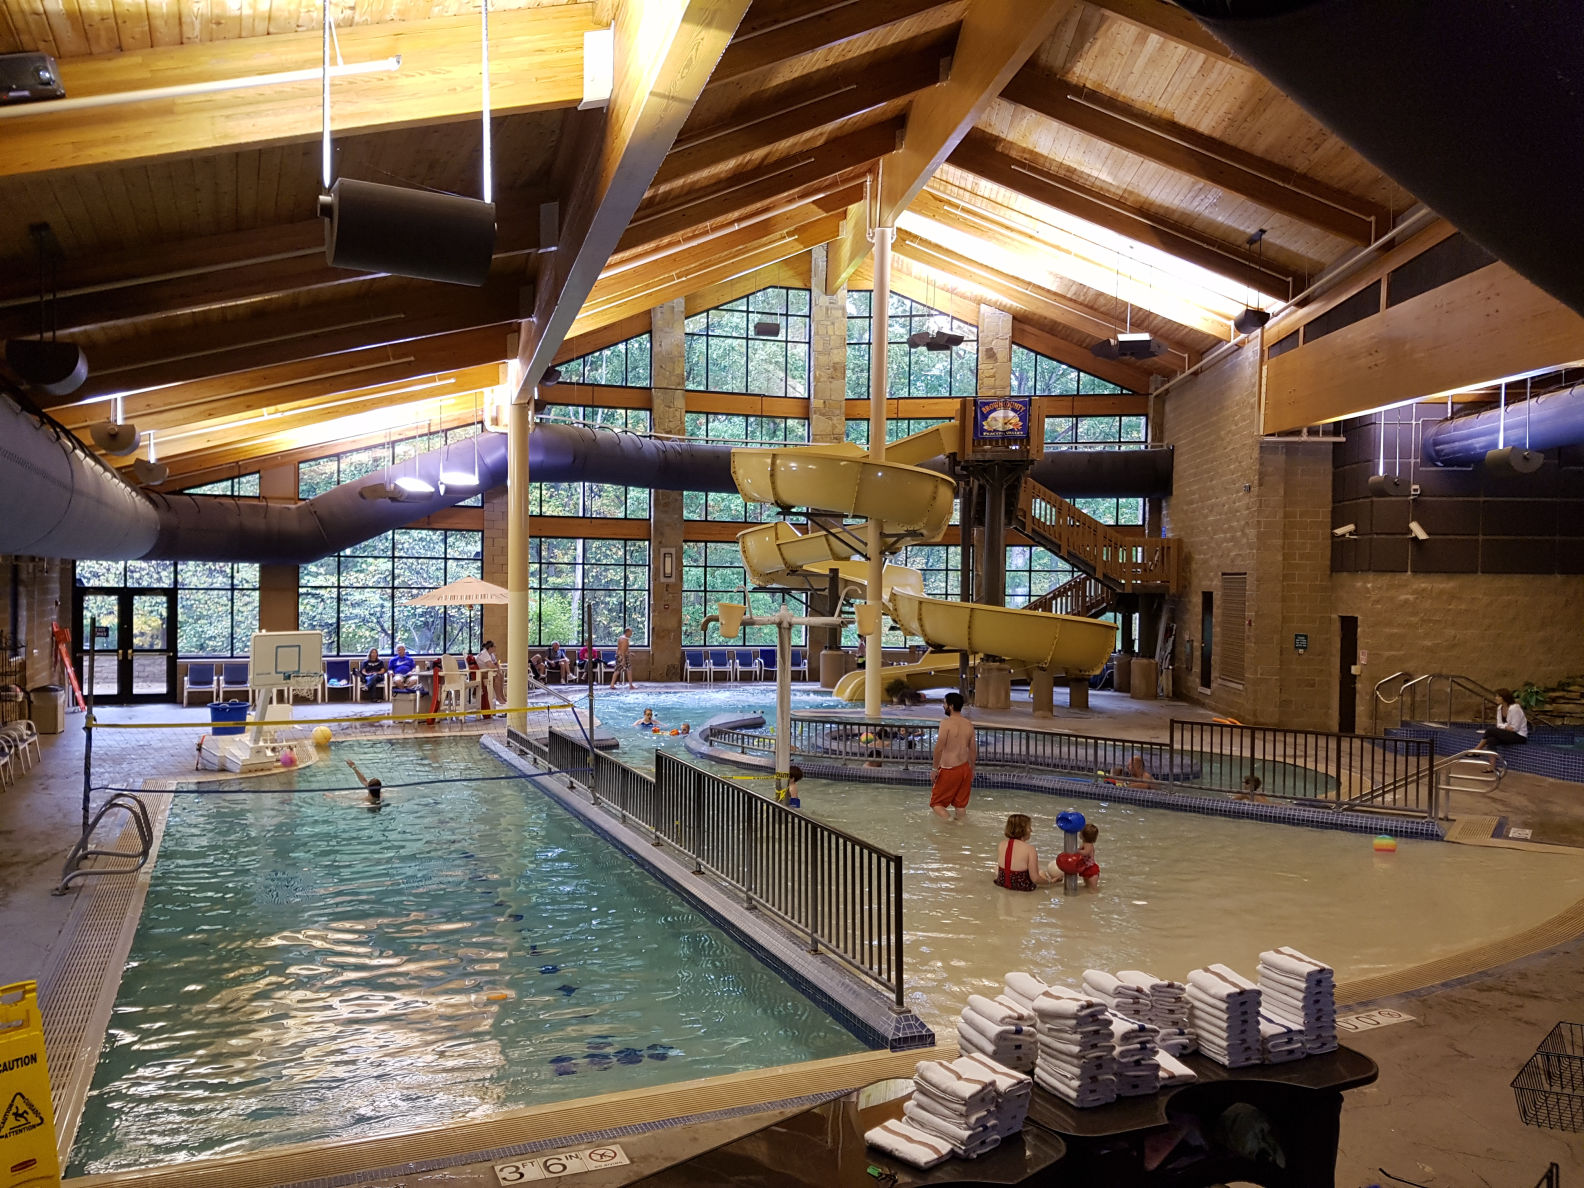 Indoor aquatic center at Abe Martin Lodge